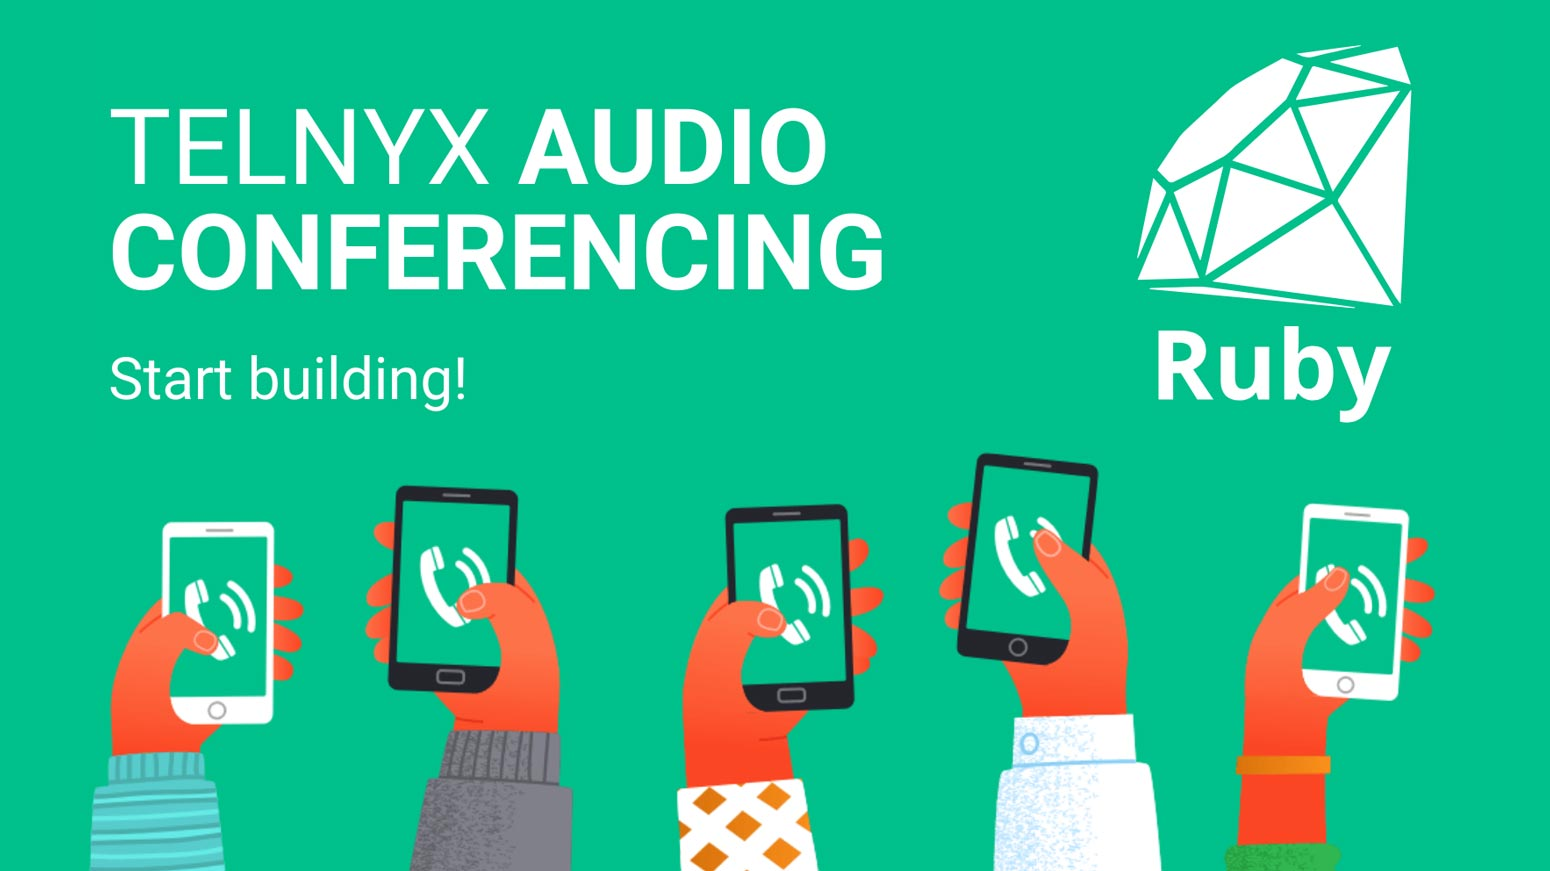 Ruby audio conferencing banner